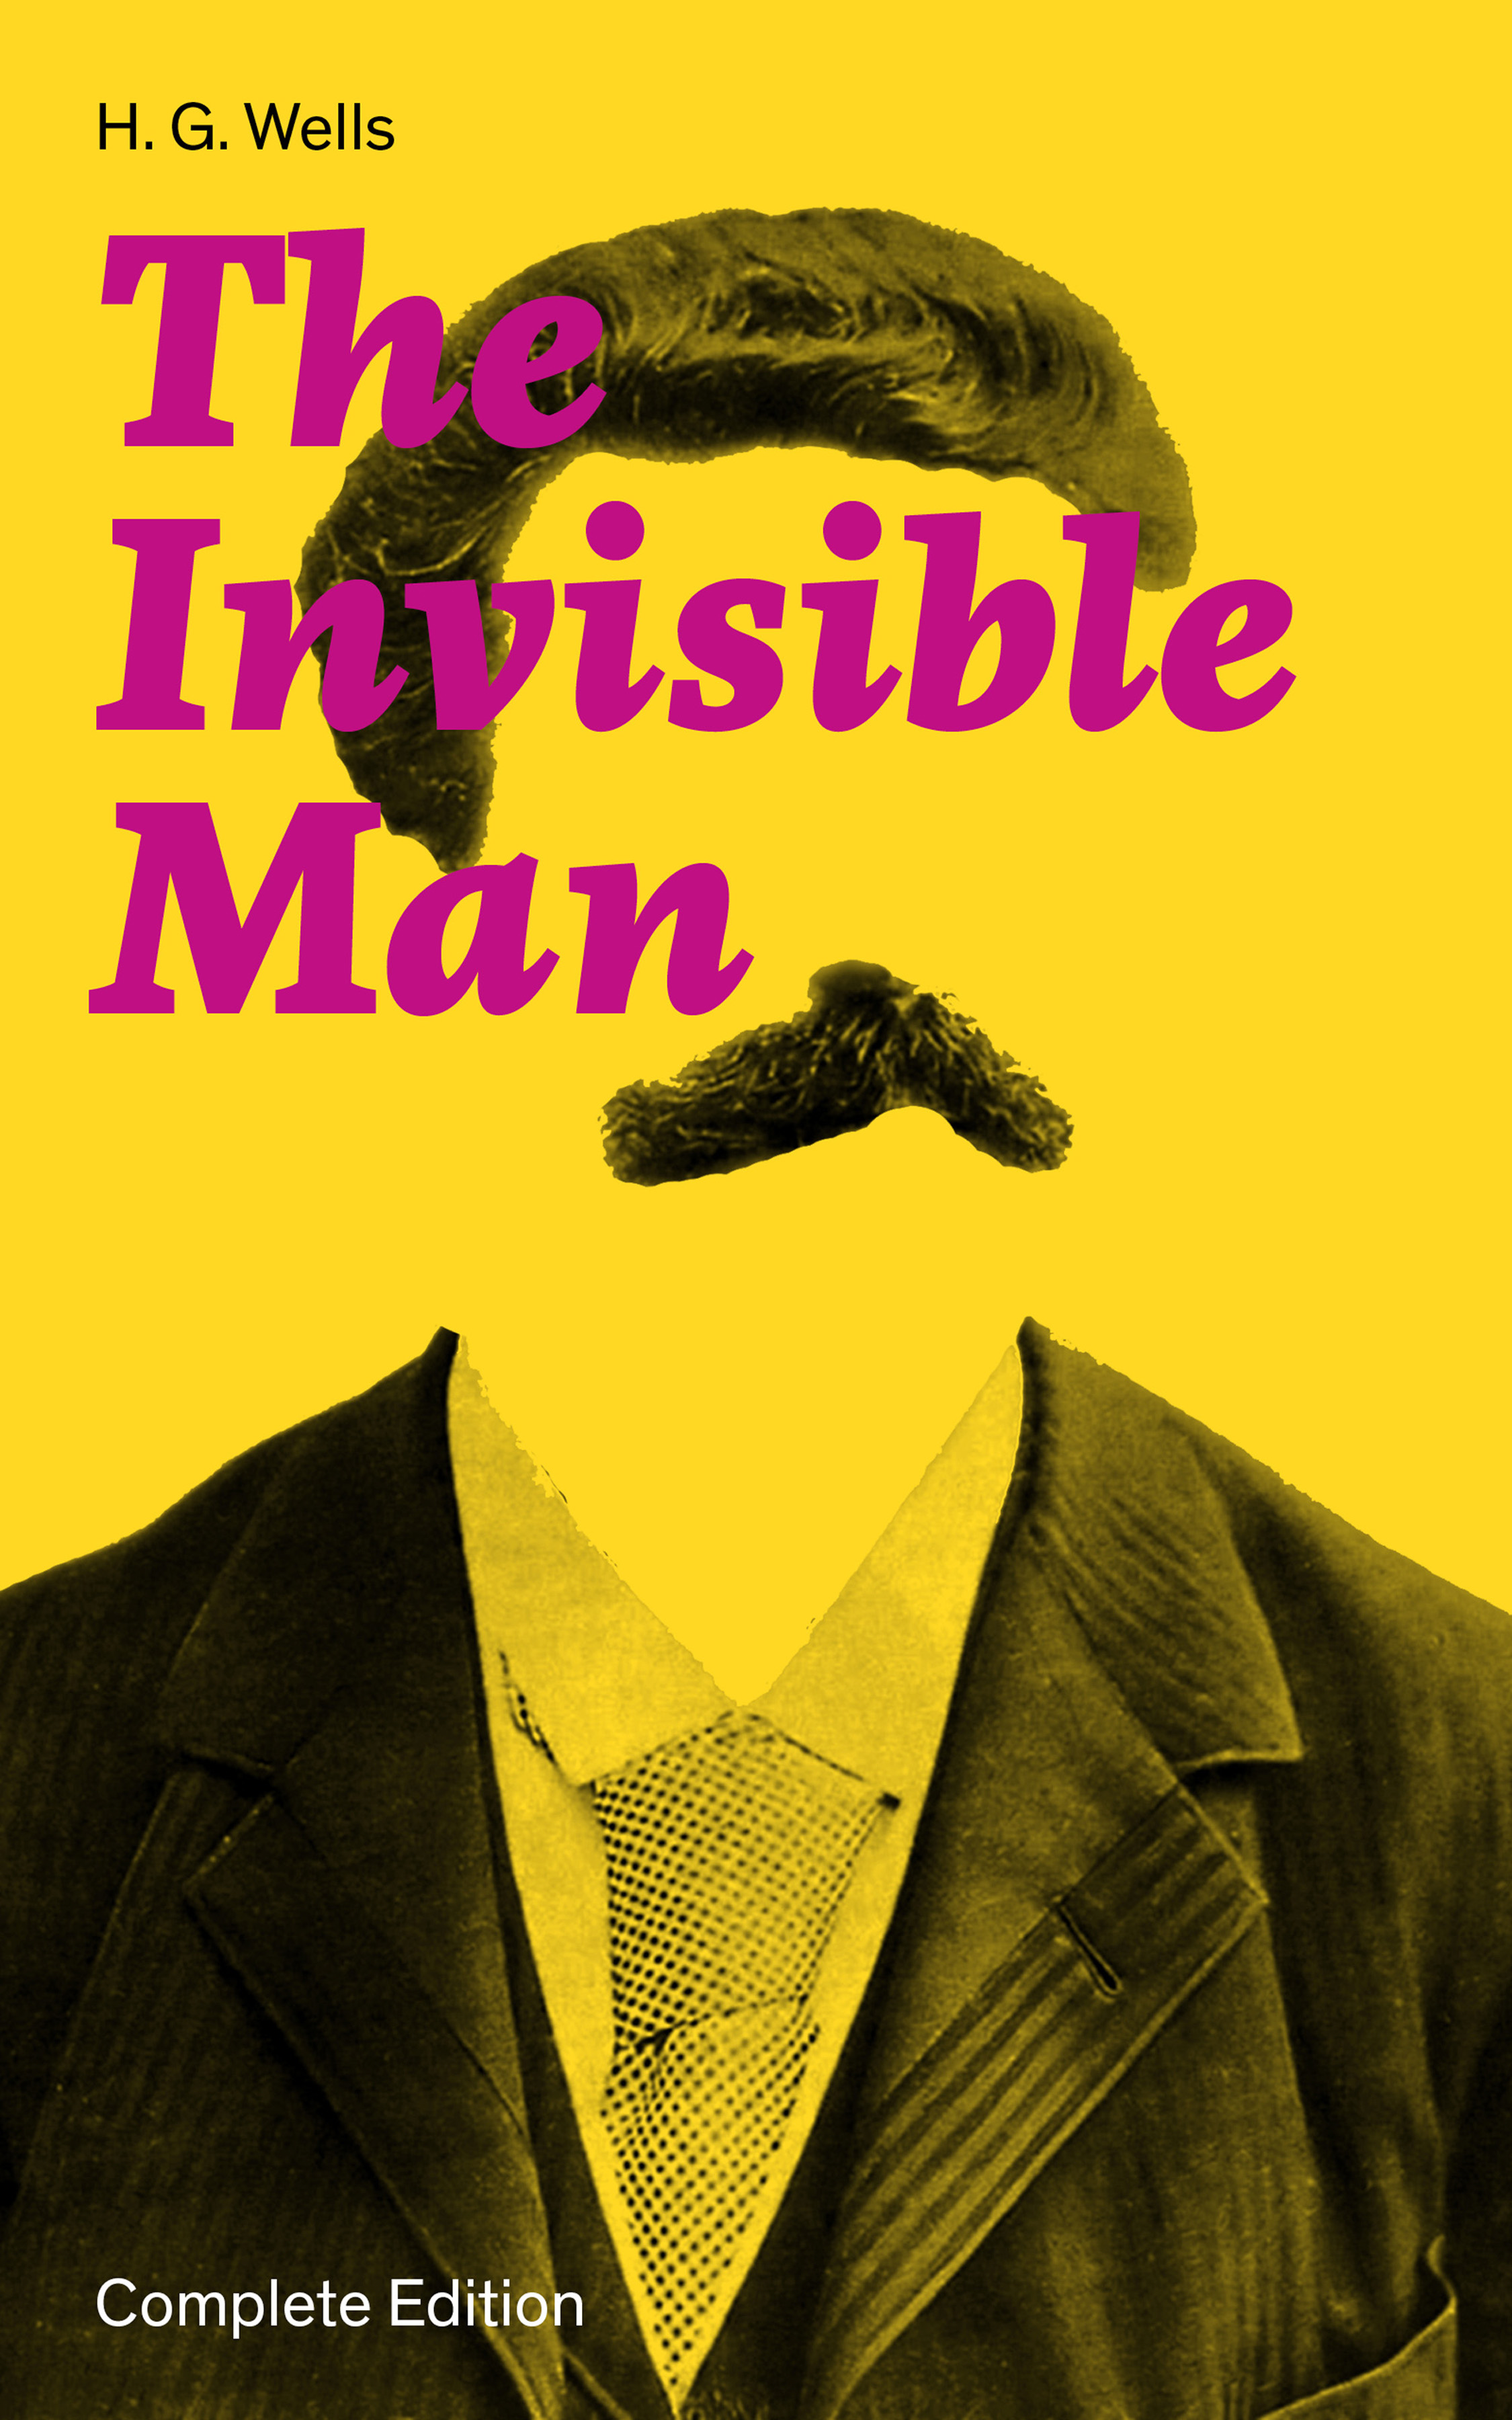 цена на H. G. Wells The Invisible Man (Complete Edition)